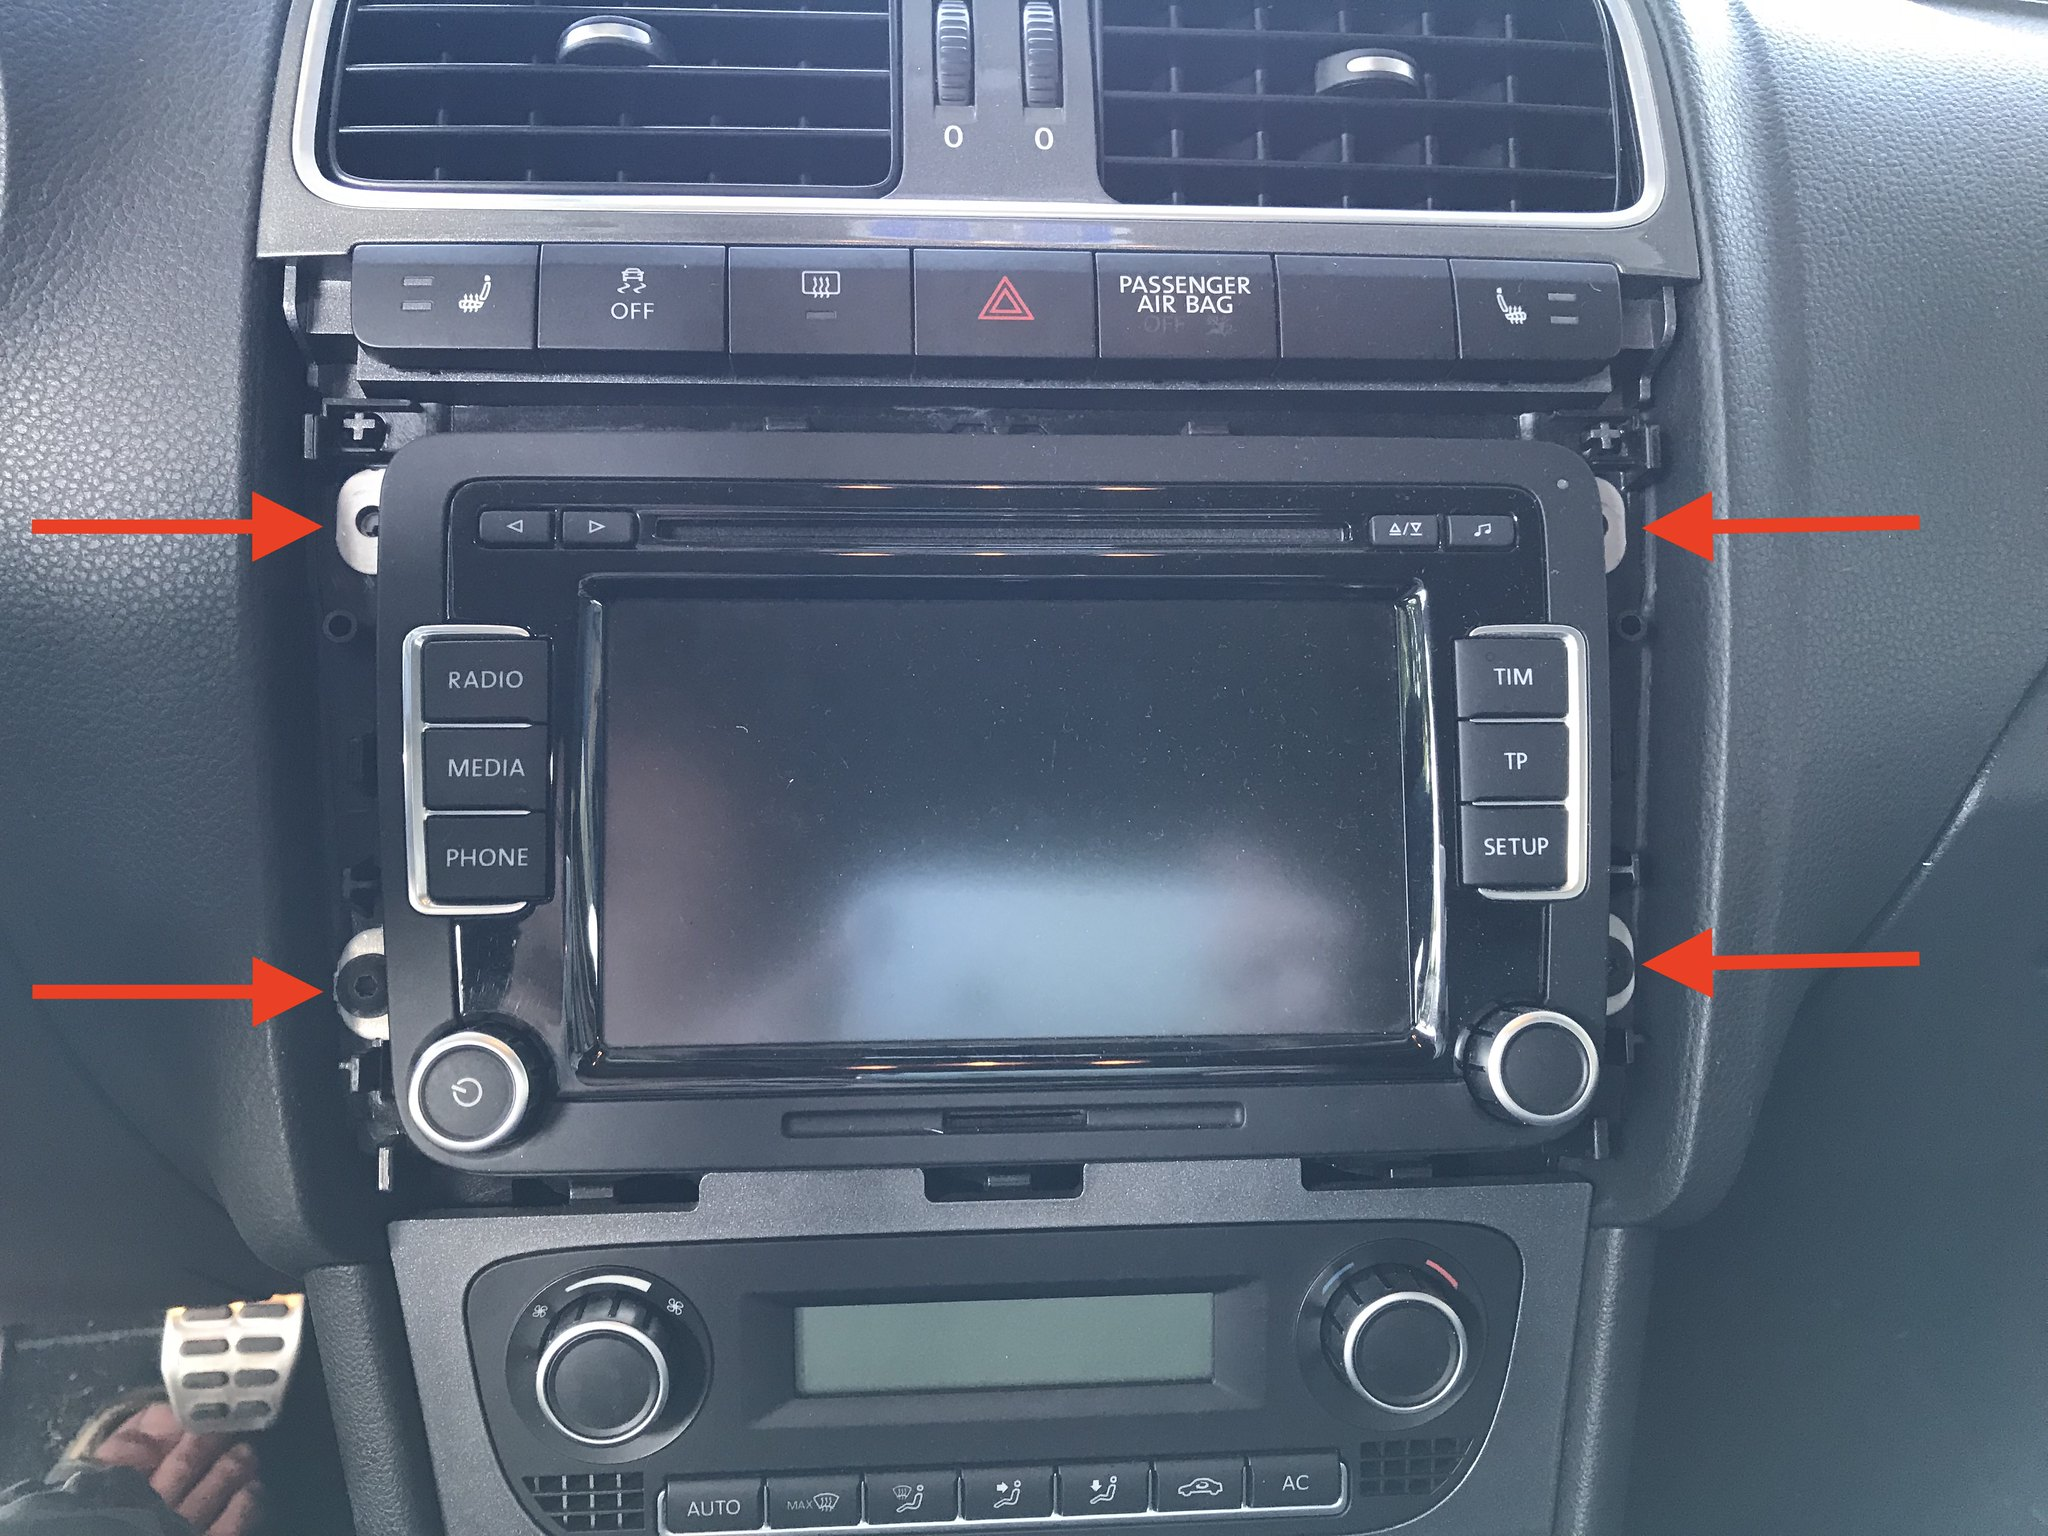 Upgrading my Volkswagen Polo 6R – Part 2: RCD 330 with CarPlay and